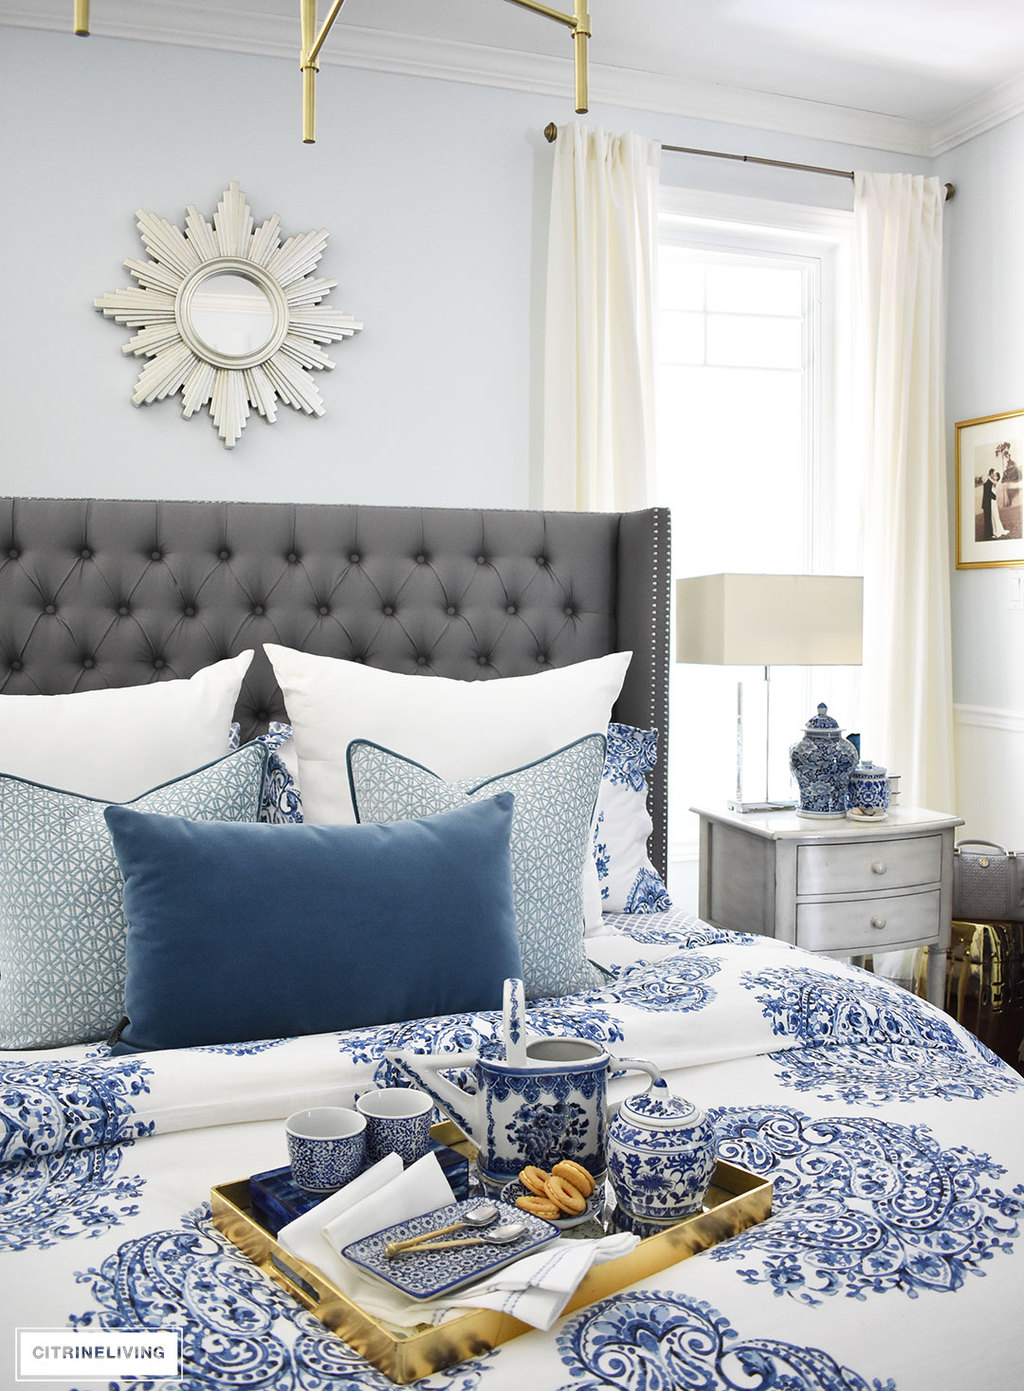 A Sunburst Mirror Is Chic And Classic Addition To Any Space This Beautiful Blue